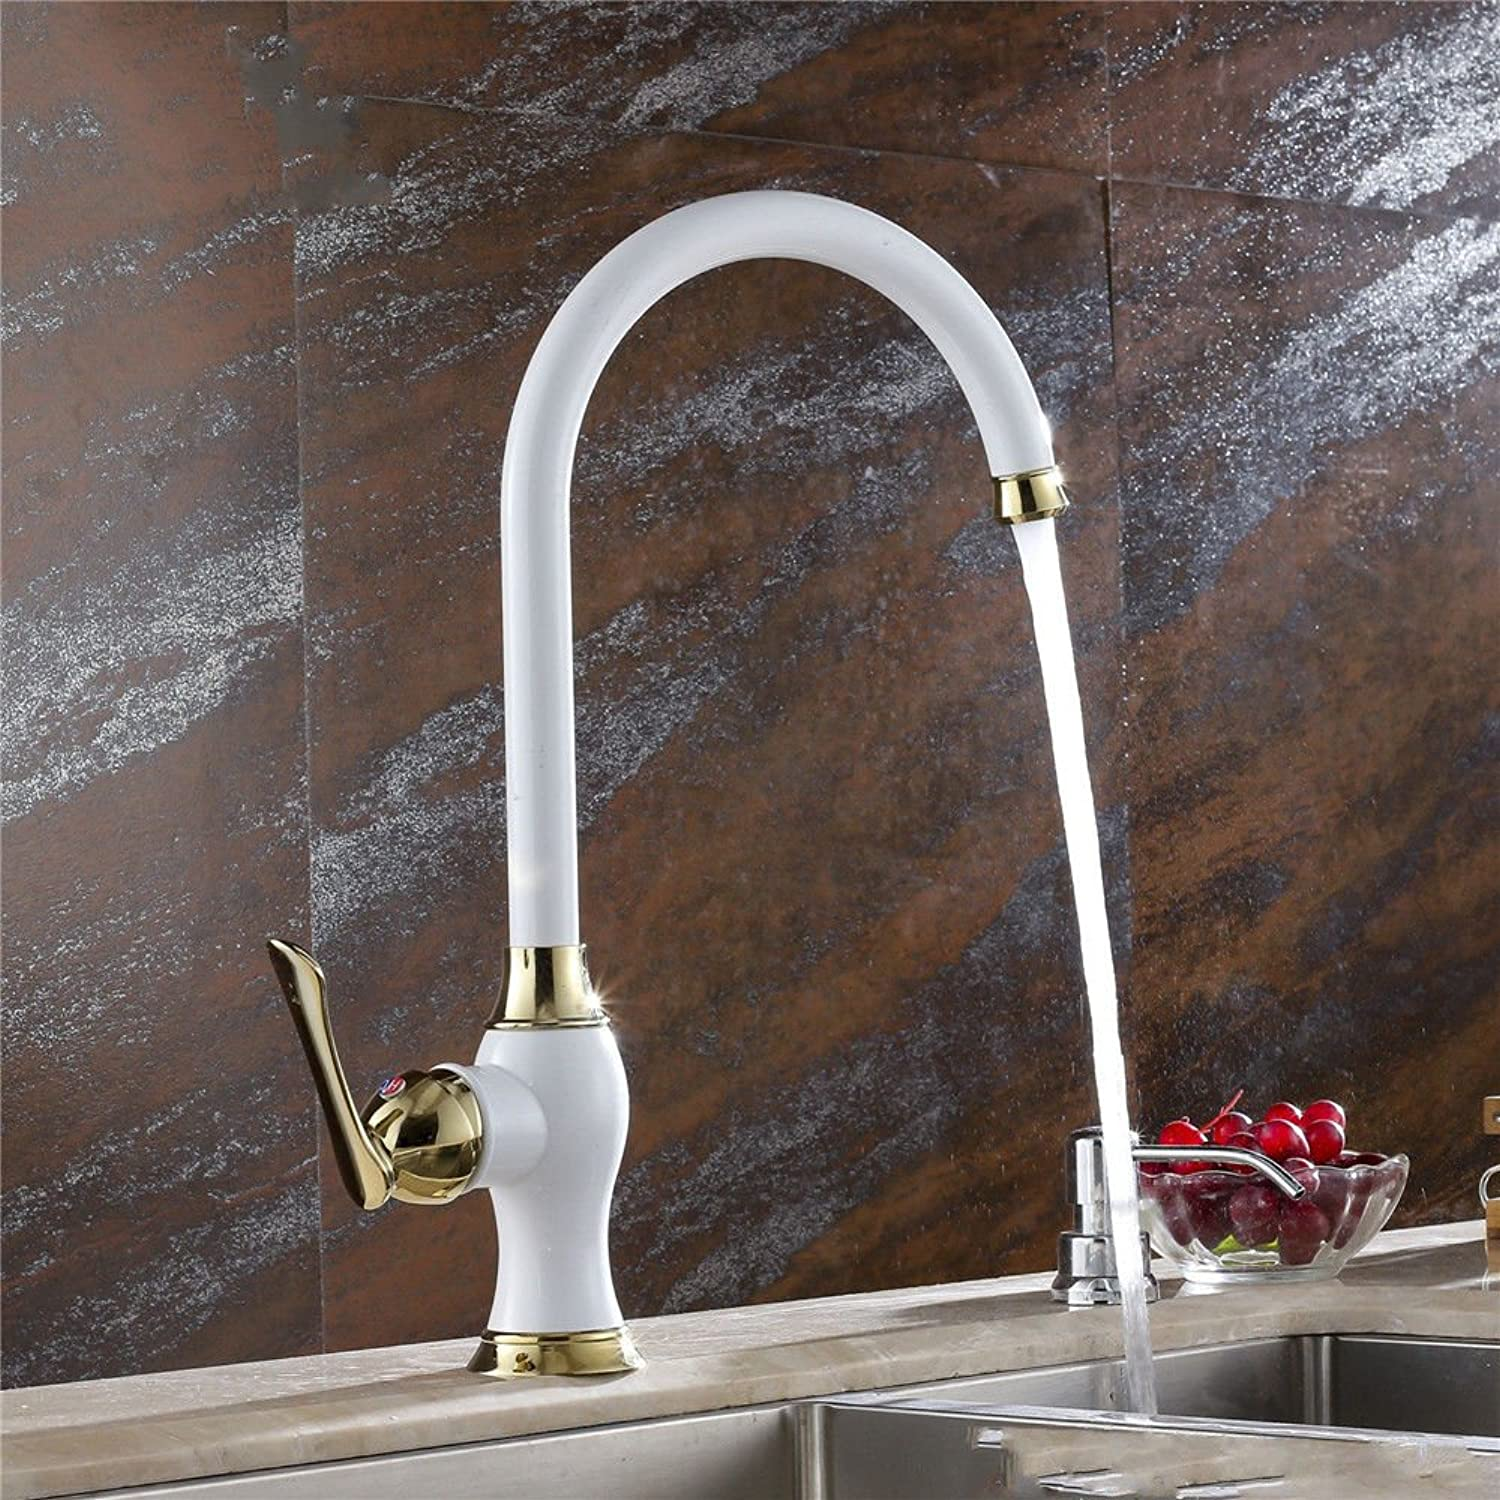 AQMMi Bathroom Sink Faucet Basin Mixer Tap White 360° Hot and Cold Water Valve Brass Modern Basin Sink Tap Bathroom Bar Faucet